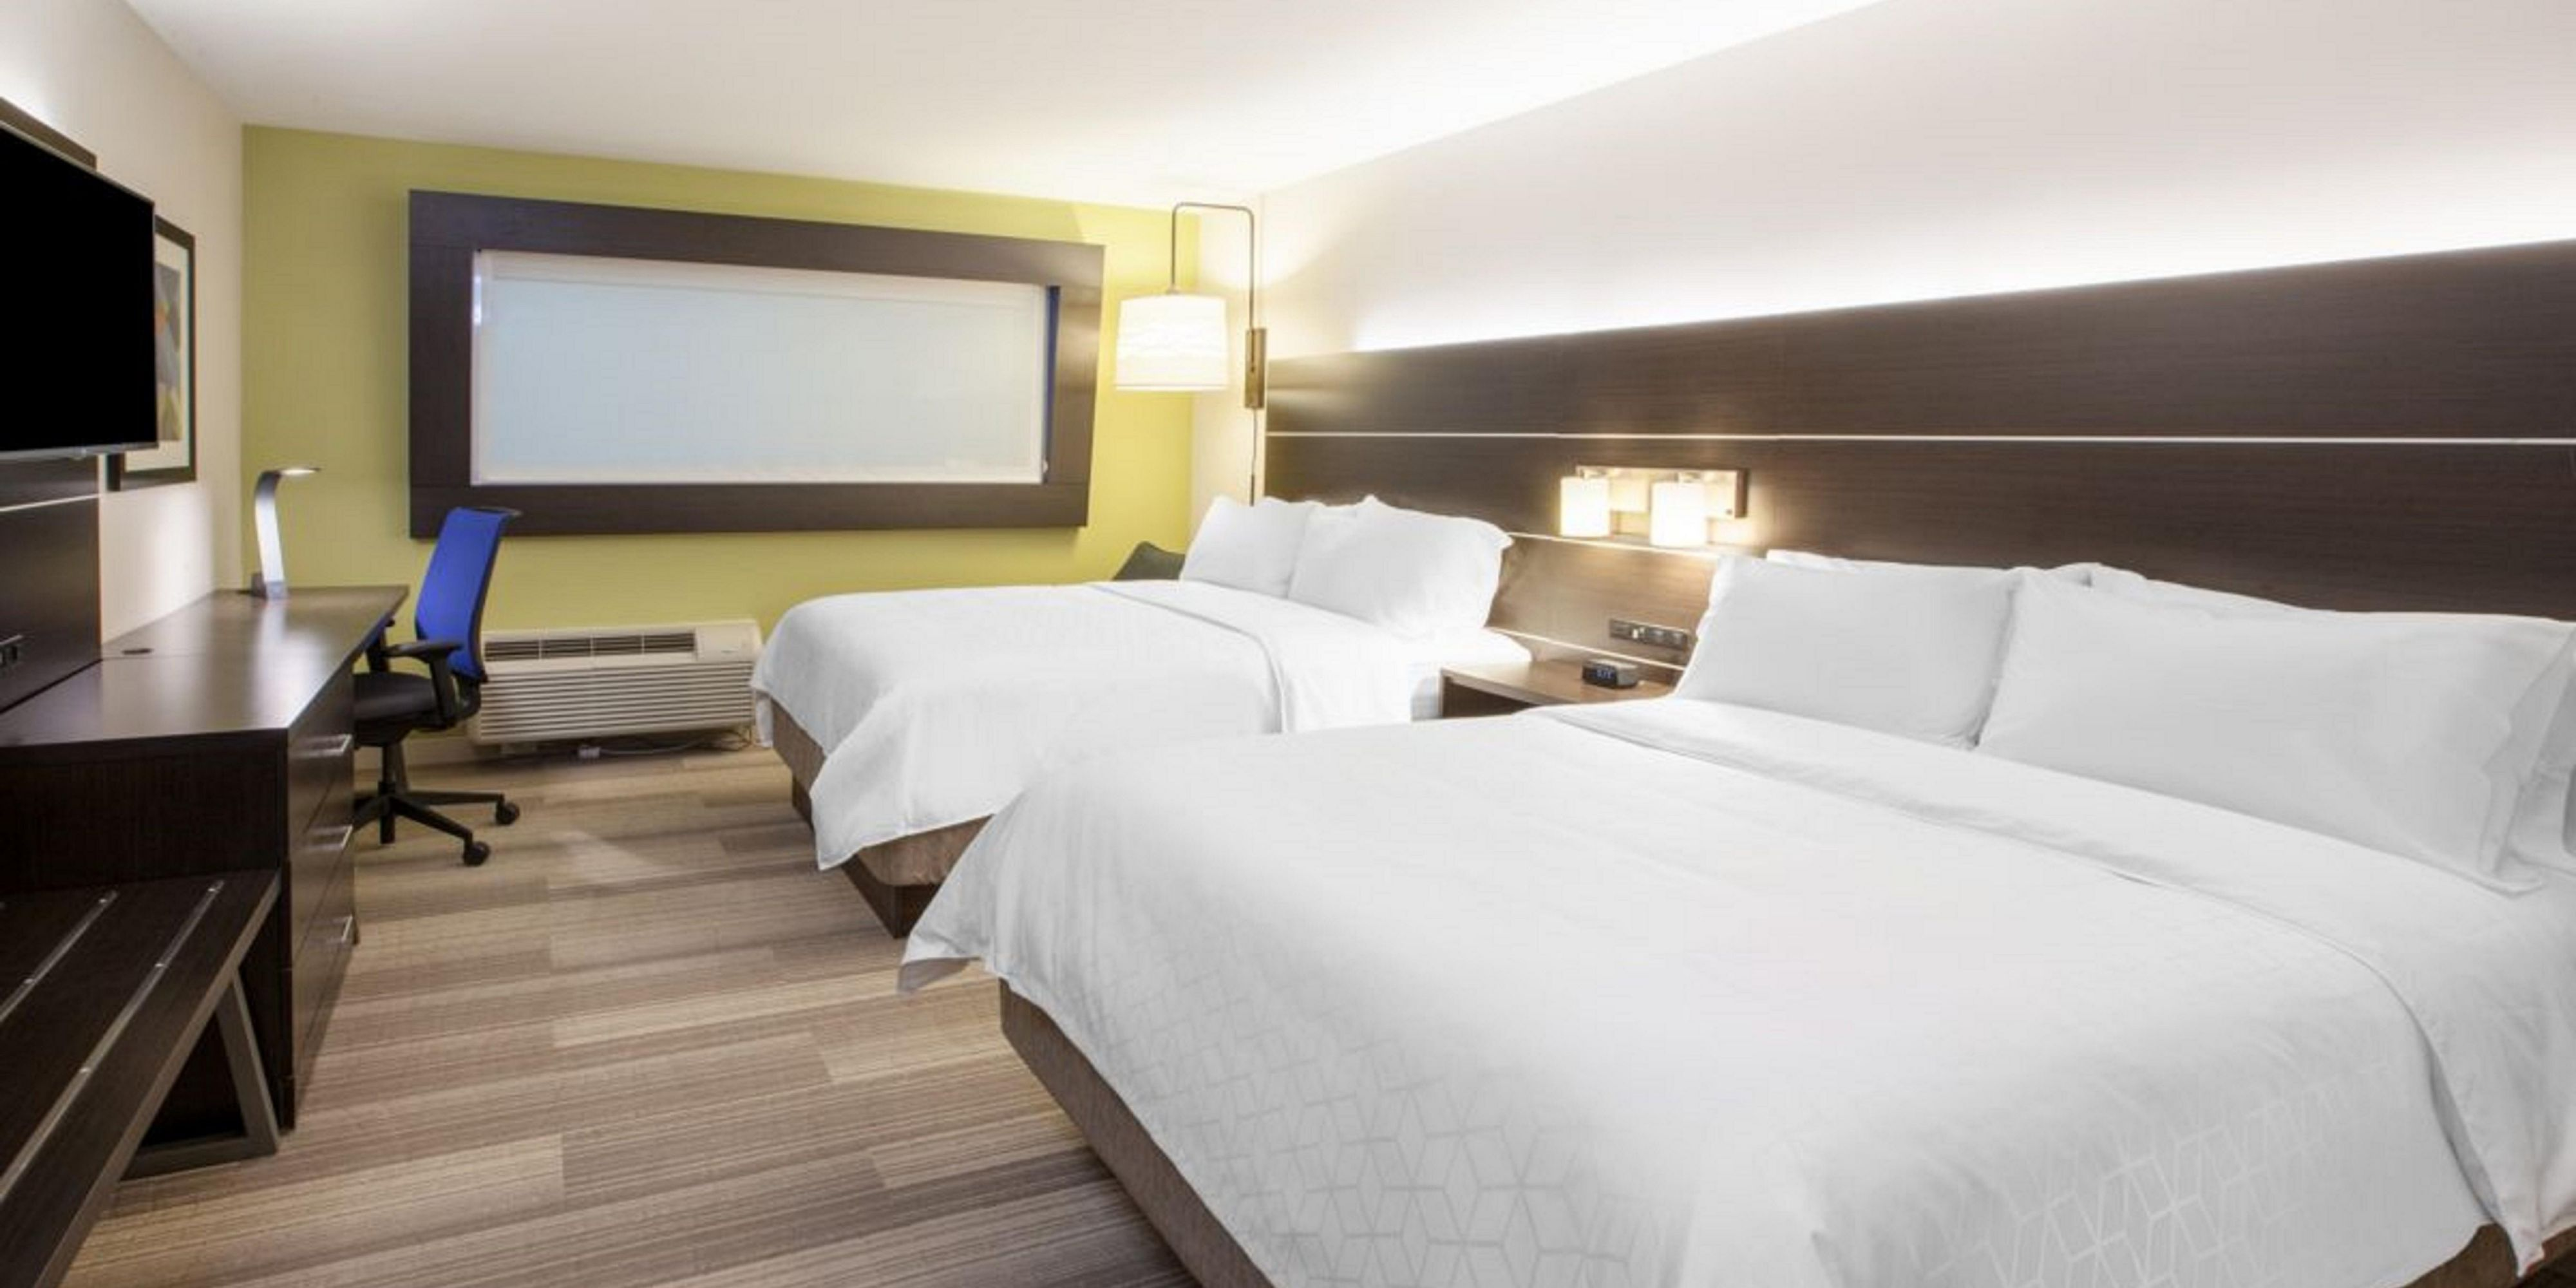 Asheville Nc Hotels With Indoor Pool Holiday Inn Suites Asheville Downtown